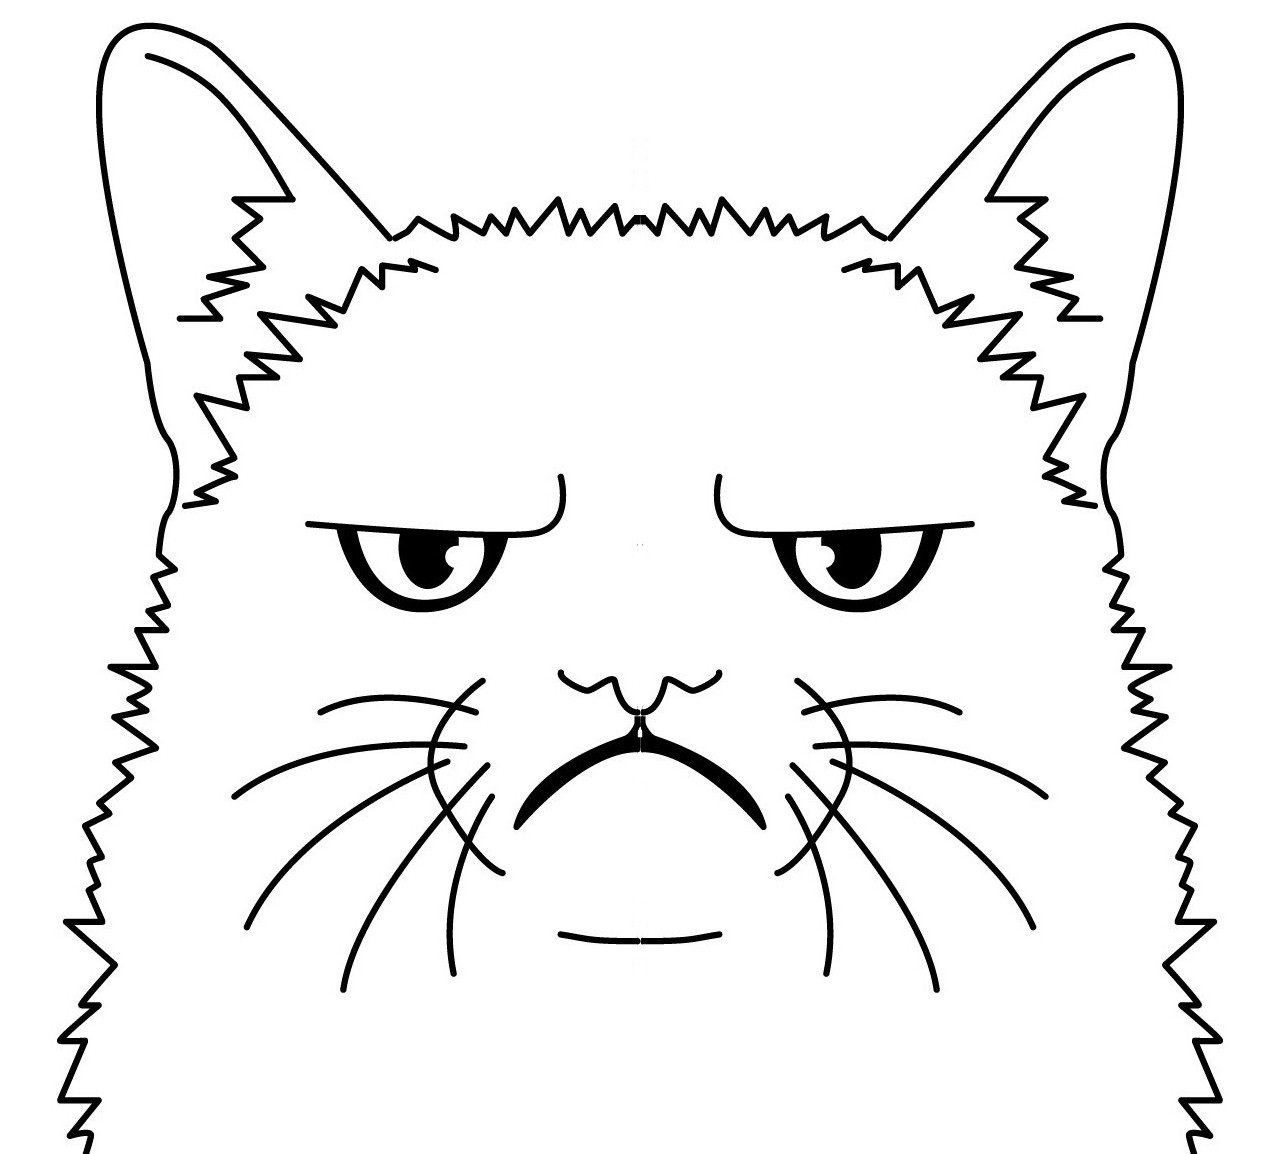 It's just a picture of Astounding Grumpy Cat Coloring Page